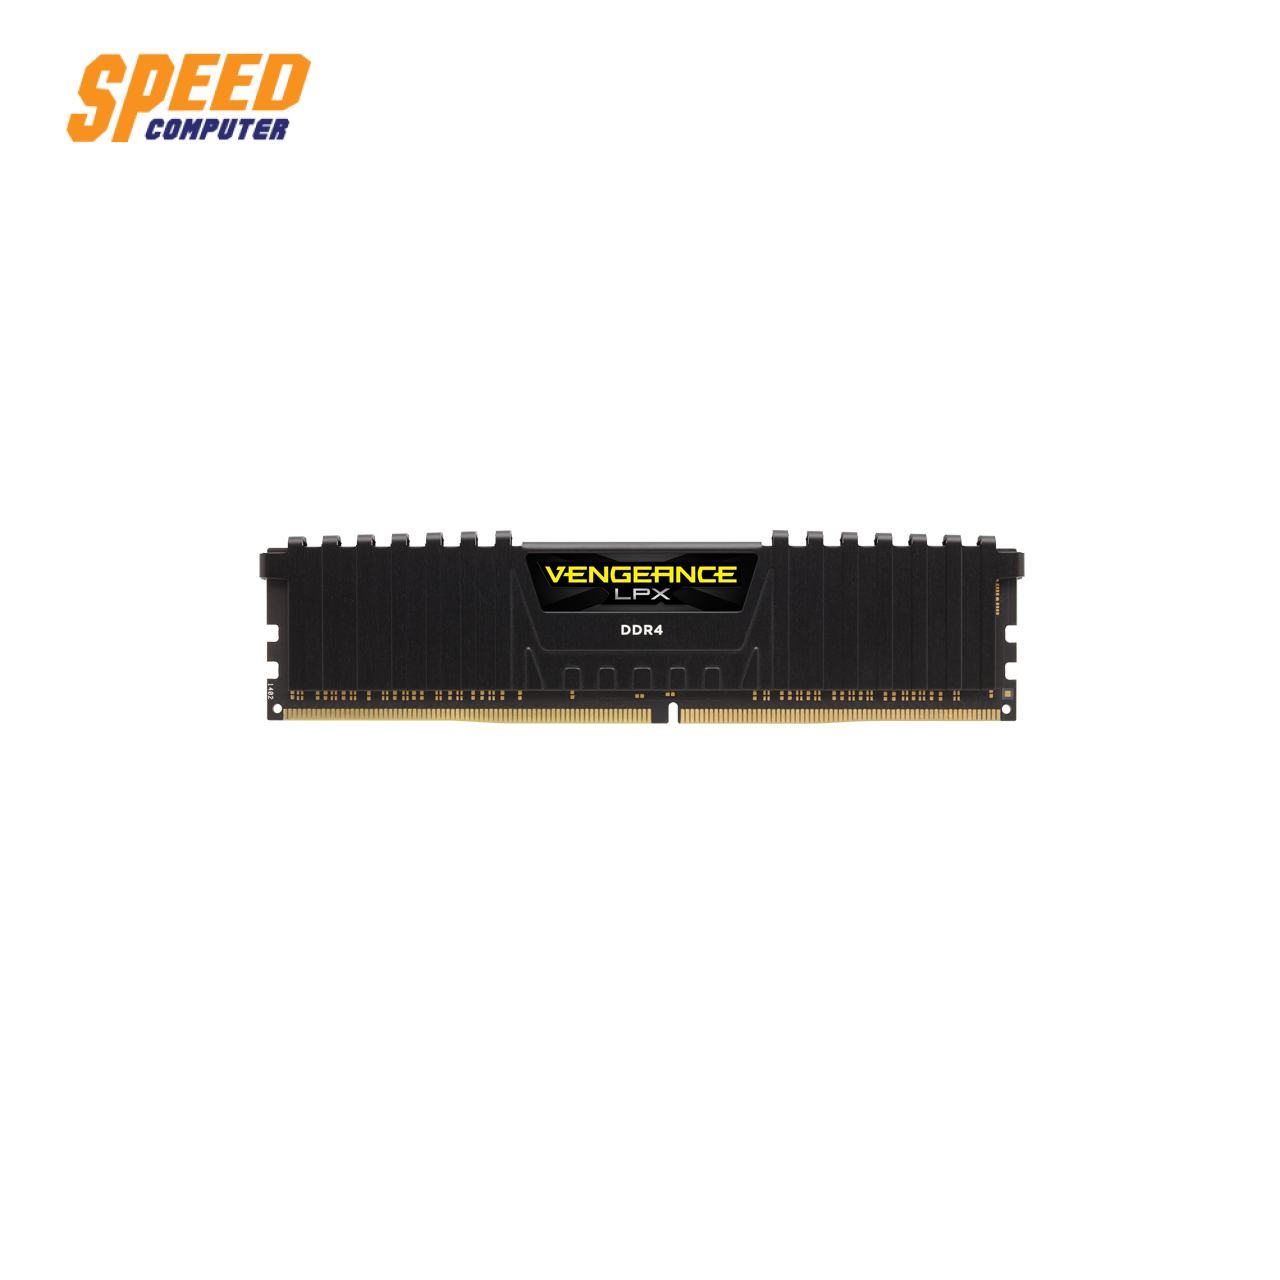 แรม CORSAIR VENGEANCE LPX 16GB DDR4 BUS 3000 (8x2) BLACK